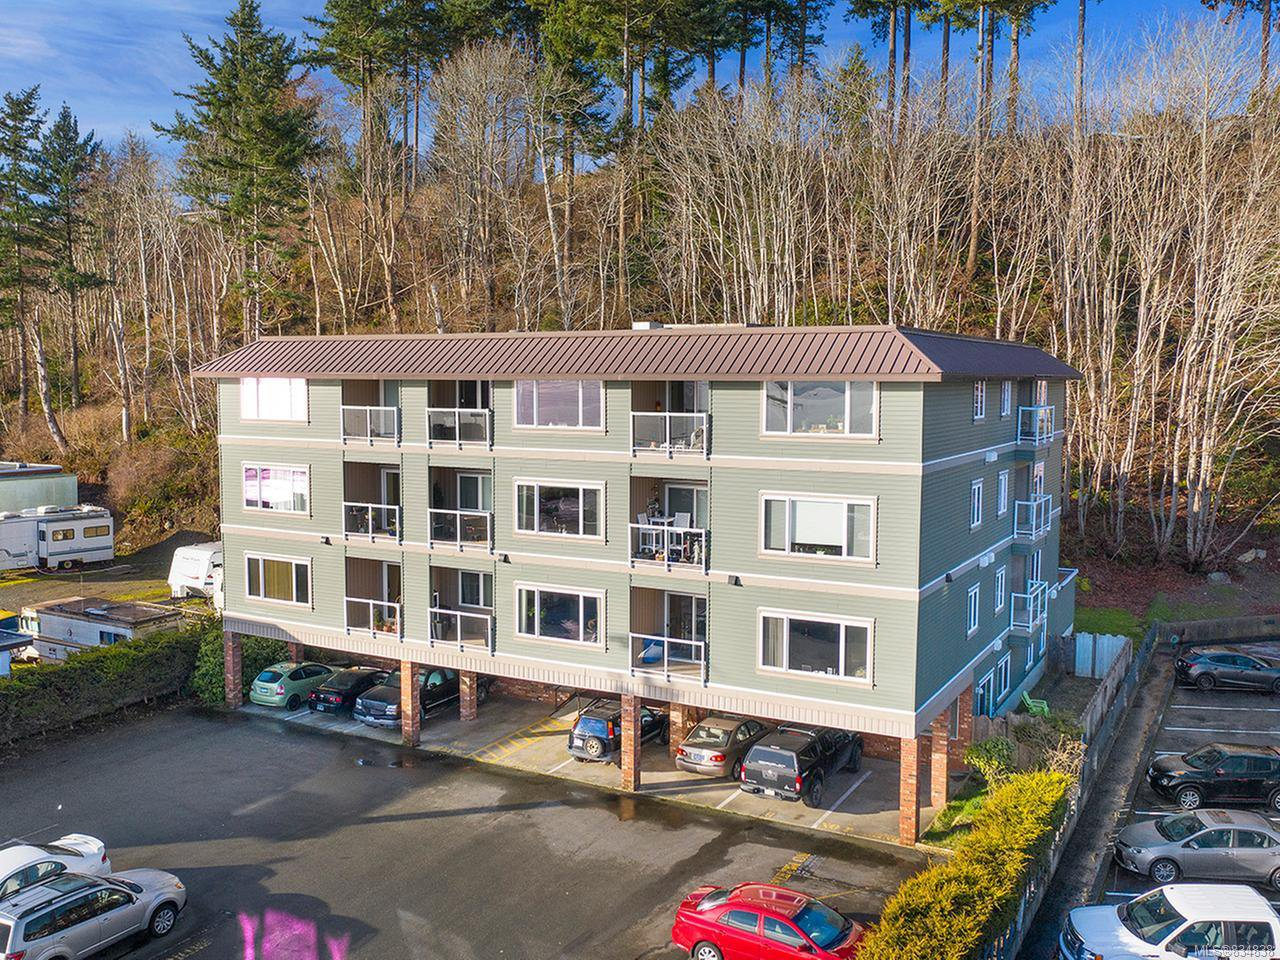 Photo 33: Photos: 301 894 S Island Hwy in CAMPBELL RIVER: CR Campbell River Central Condo for sale (Campbell River)  : MLS®# 834838